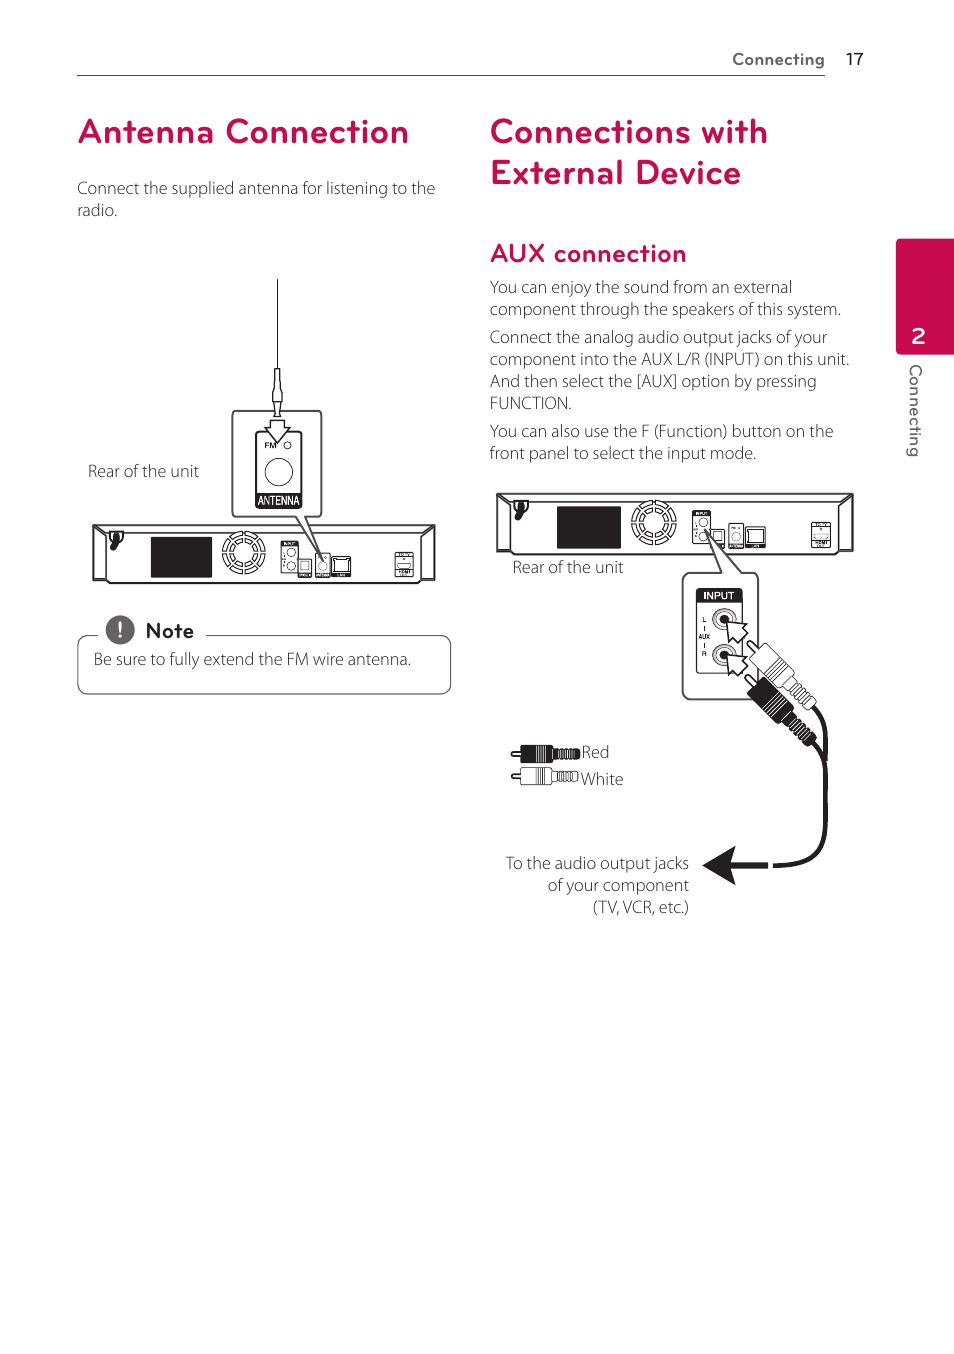 antenna connection, connections with external device, aux connection   lg  bh5140s user manual   page 17 / 72